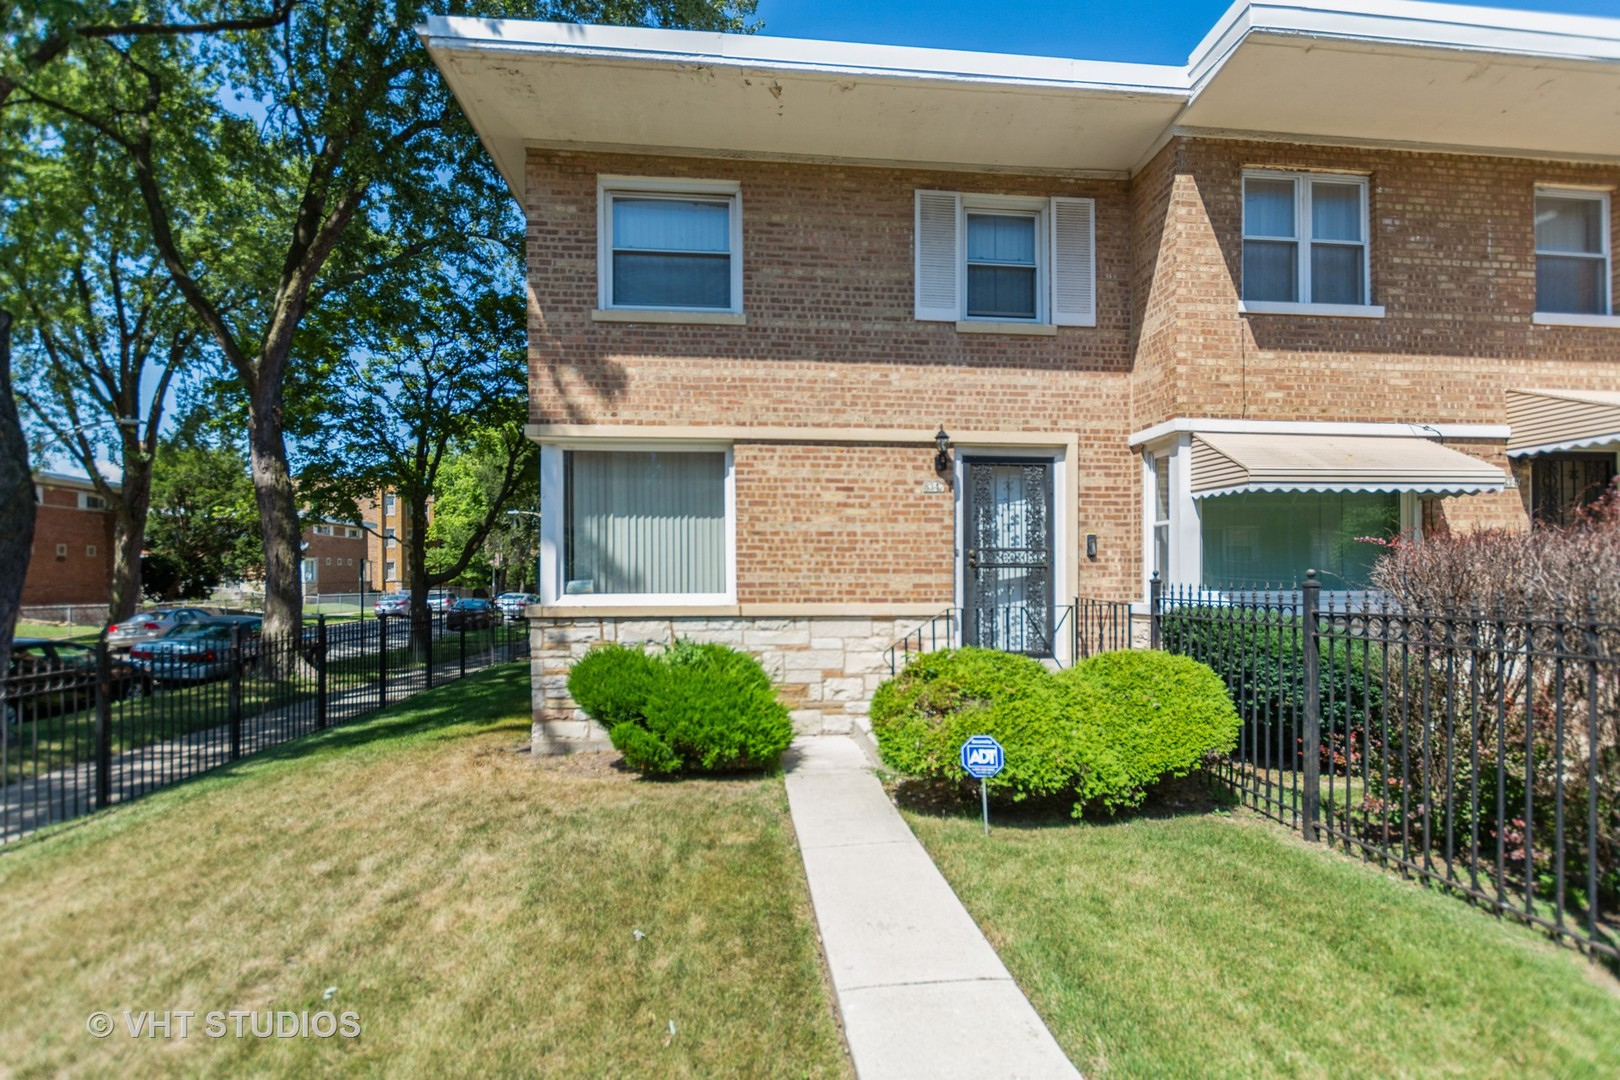 8347 Ingleside Unit Unit 8347 ,Chicago, Illinois 60619